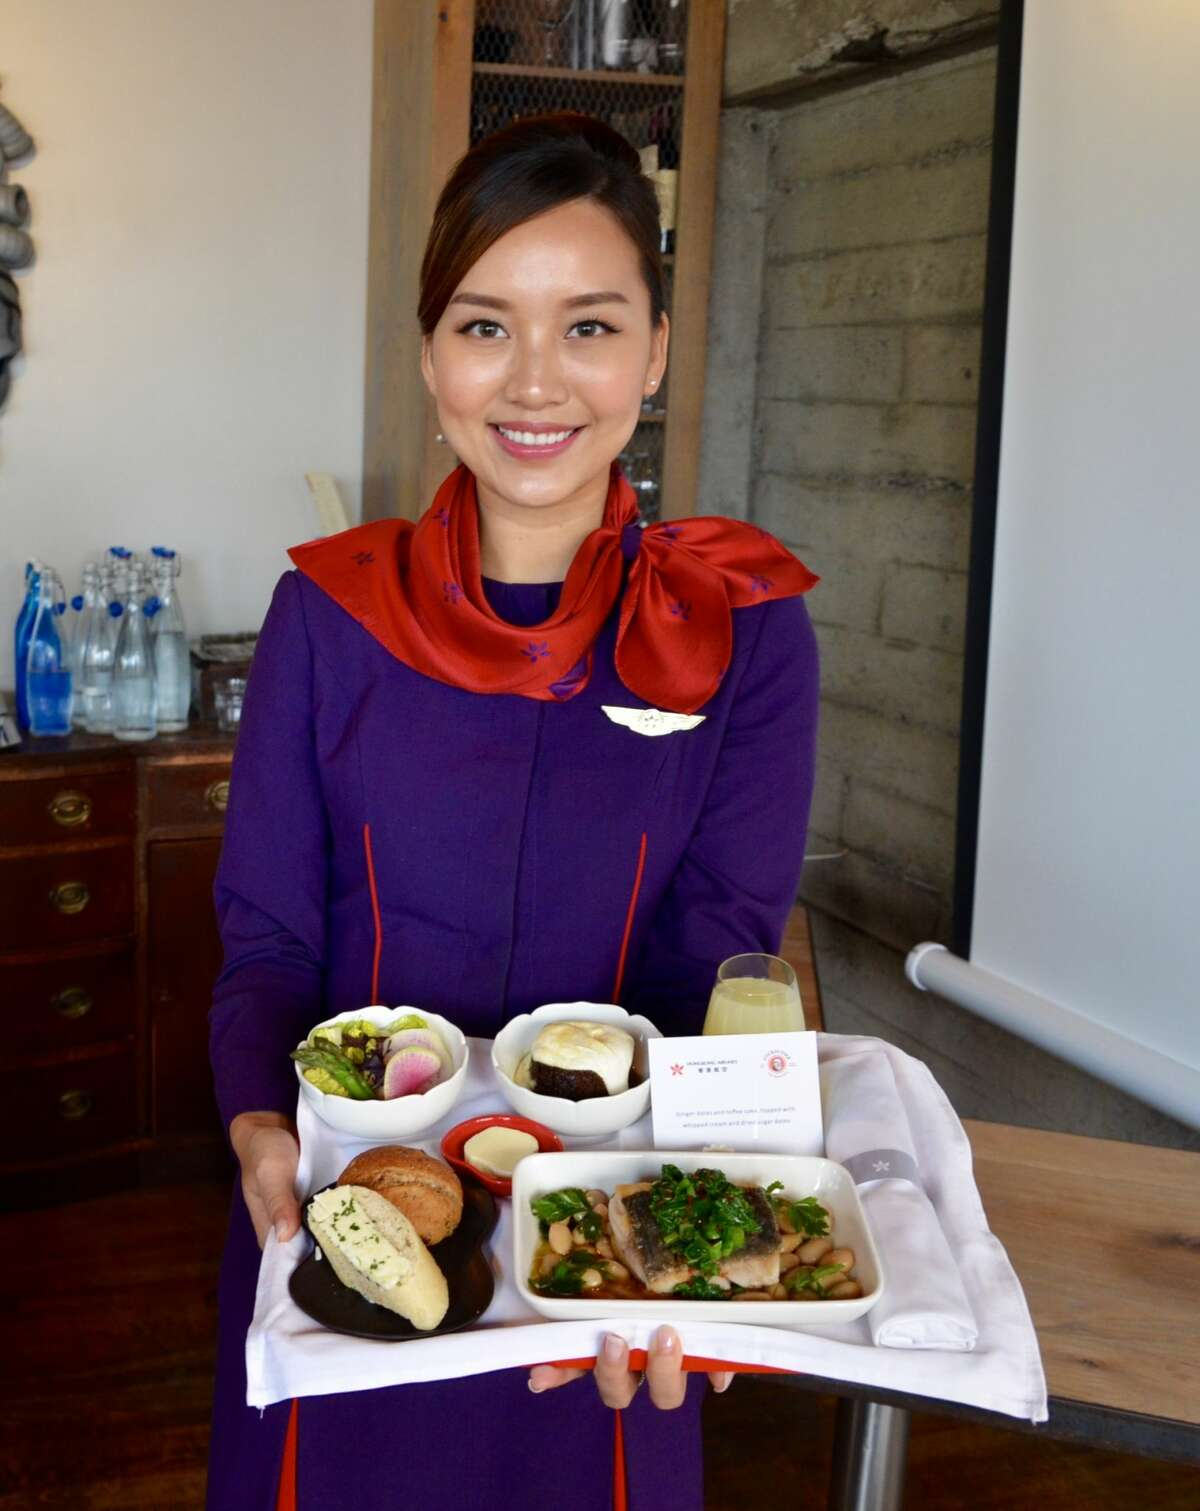 Flight attendants help introduce new business class meals at Cockscomb restaurant in San Francisco